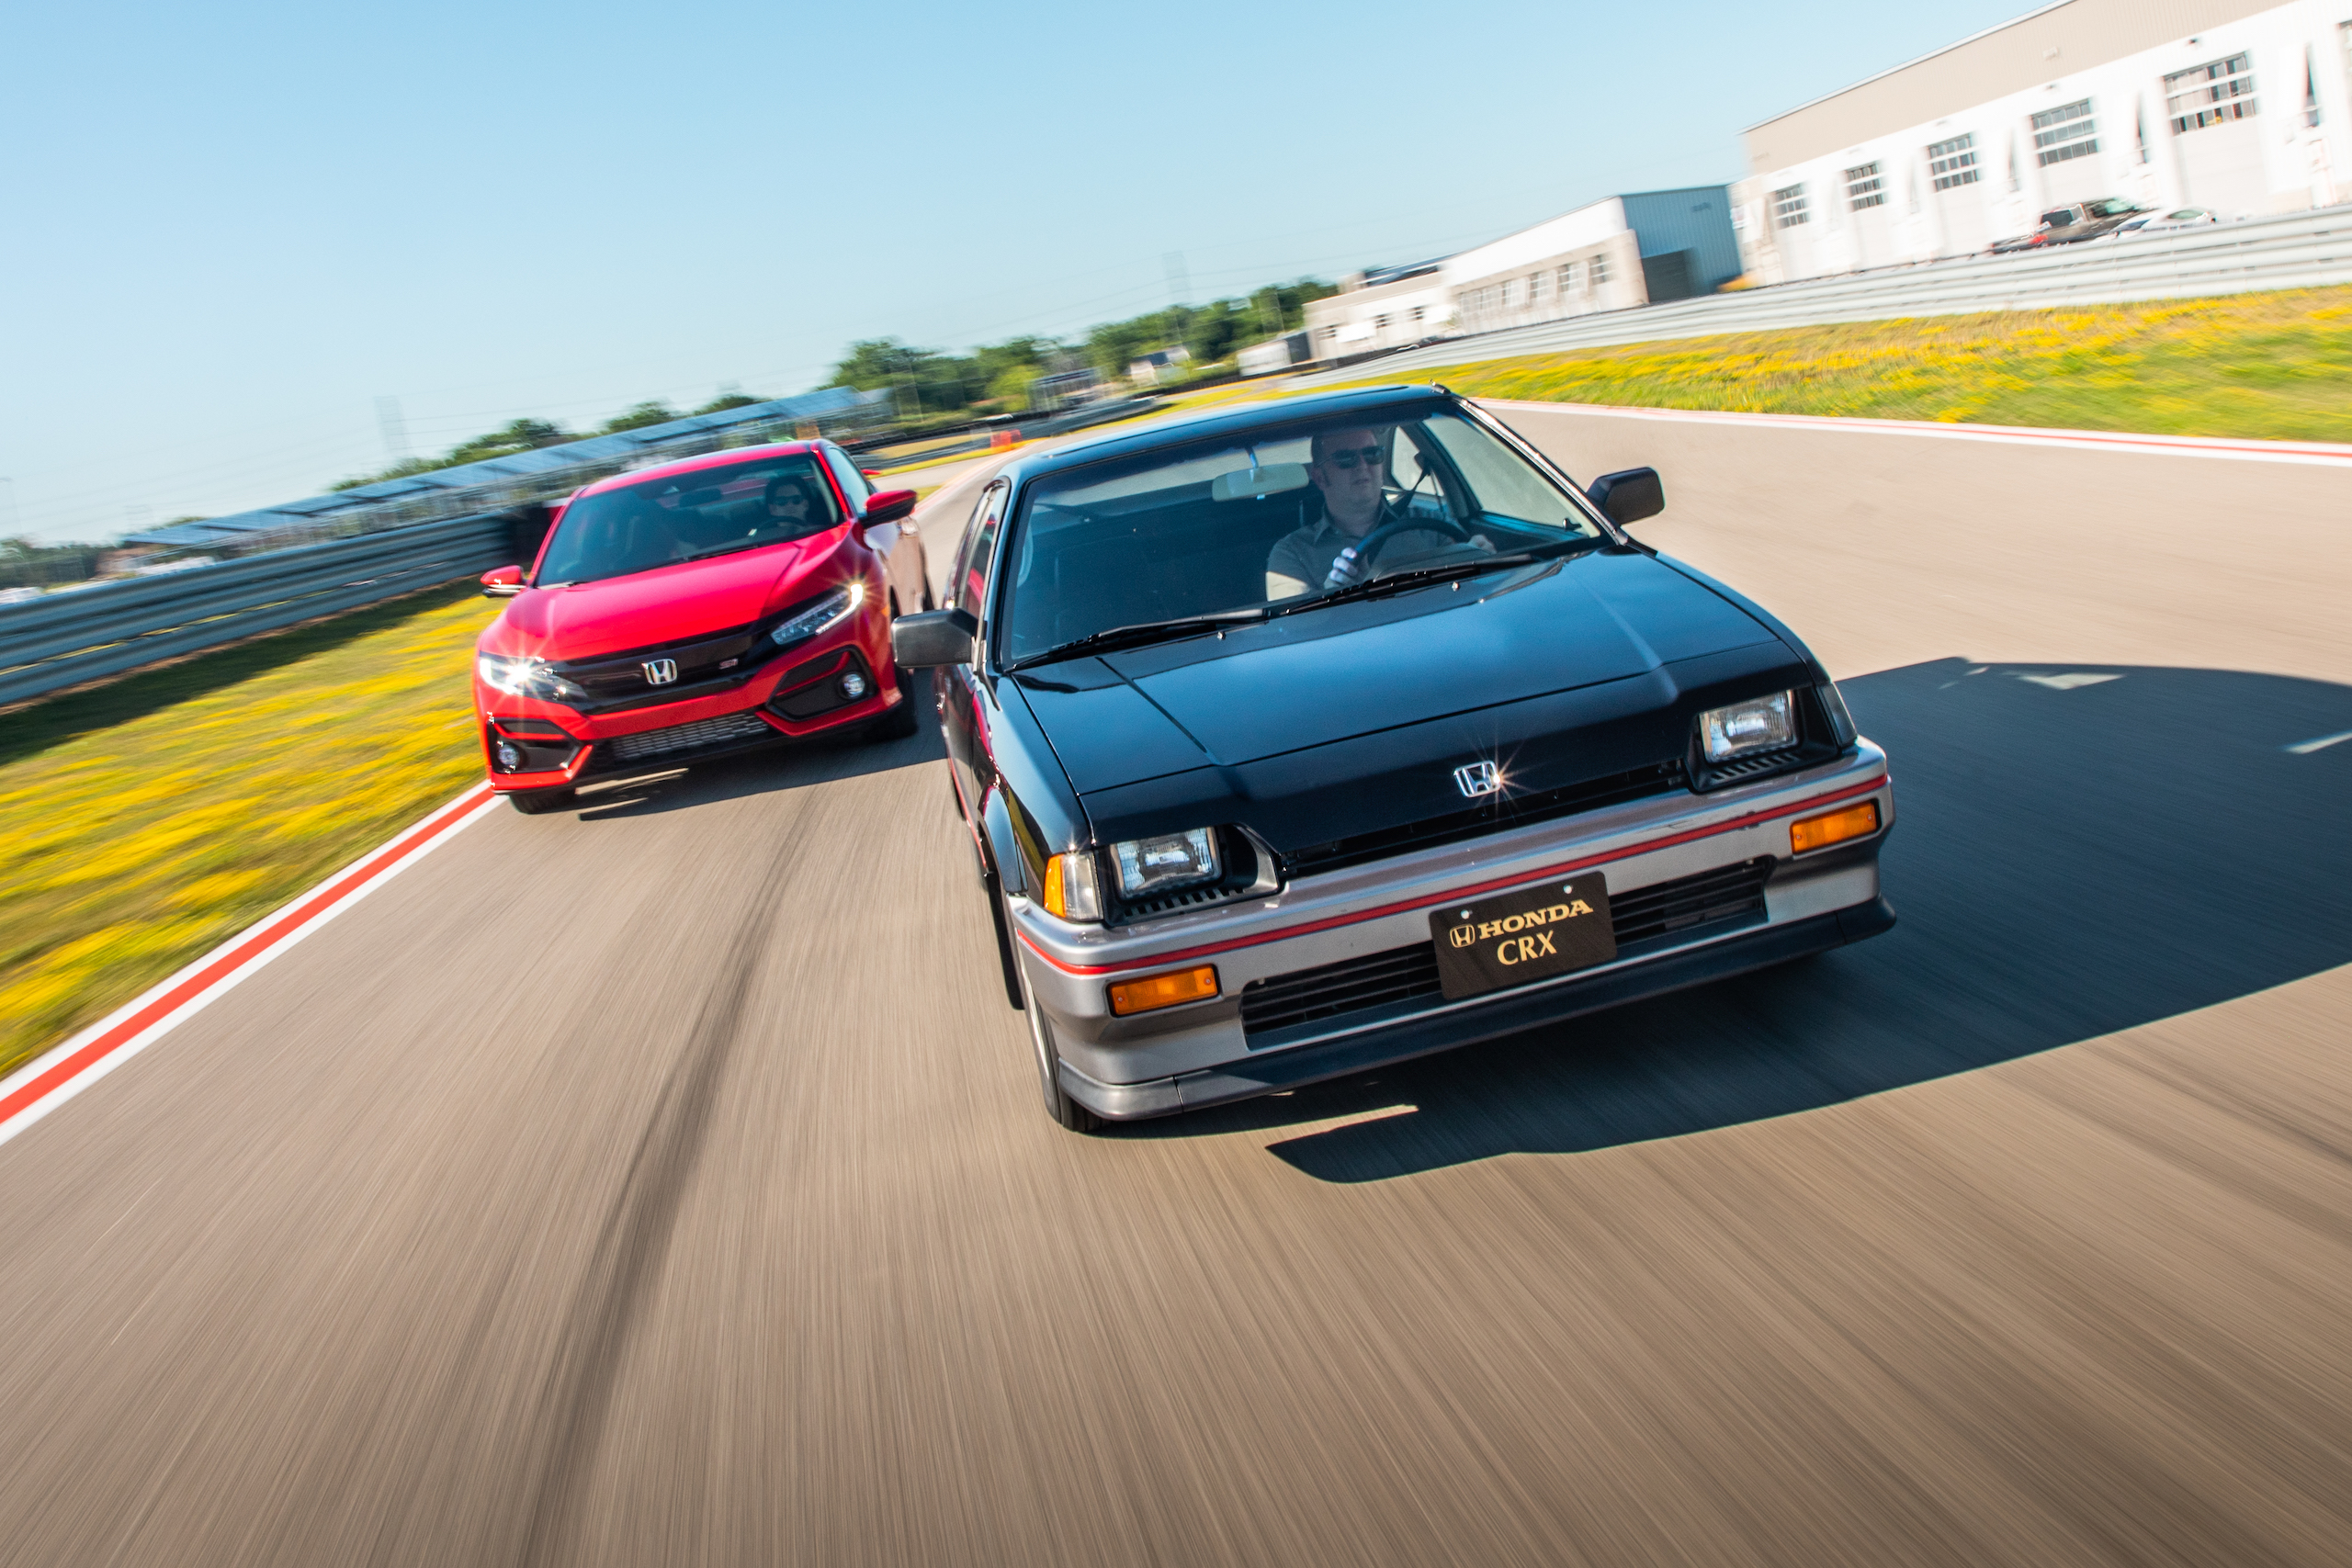 1985 CRX Si and 2020 Civic Si track action